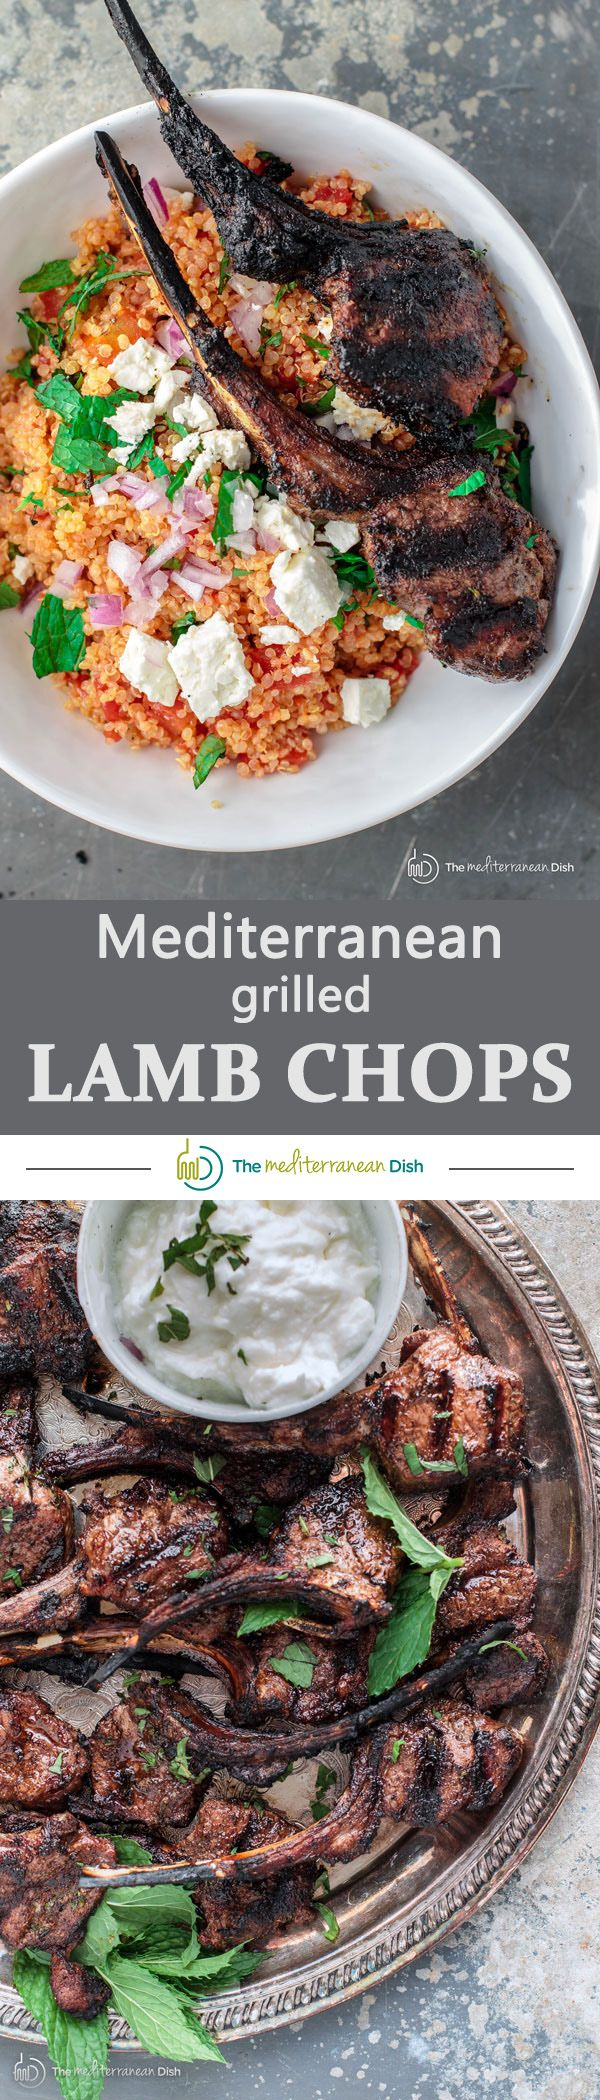 Mediterranean Grilled Lamb Chop Recipe with Tomato Mint Quinoa | The Mediterranean Dish. A quick and impressive meal! Rack of lamb, divided into chops, marinated with an awesome Mediterranean spice rub. Grilled to perfection and served with a bowl of tomato mint quinoa! Need I say more! Try it today!